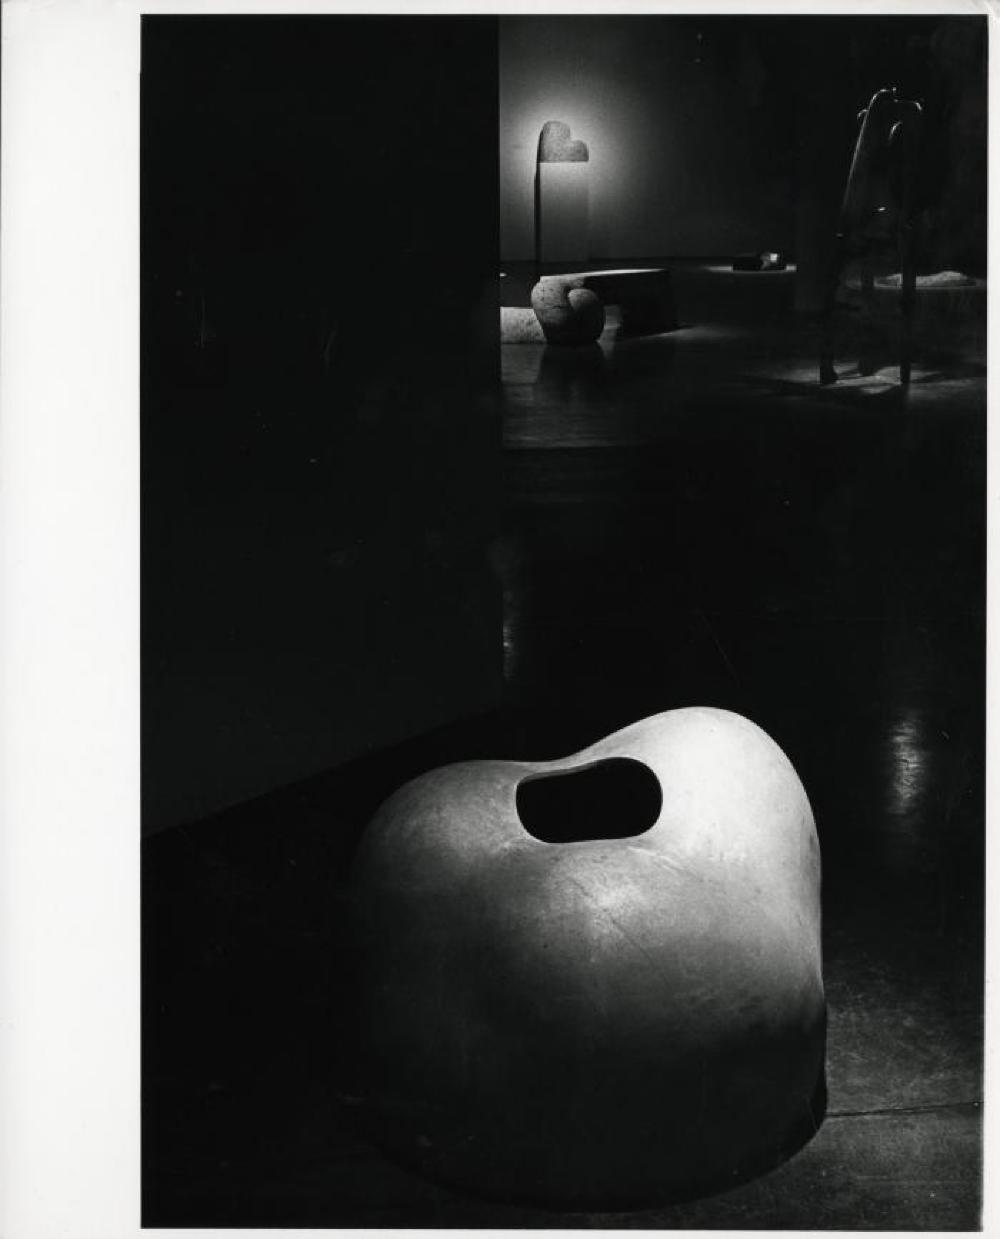 """""""Isamu Noguchi: The Sculpture of Spaces,"""" Whitney Museum of American Art, February 5, 1980 - April 6, 1980."""